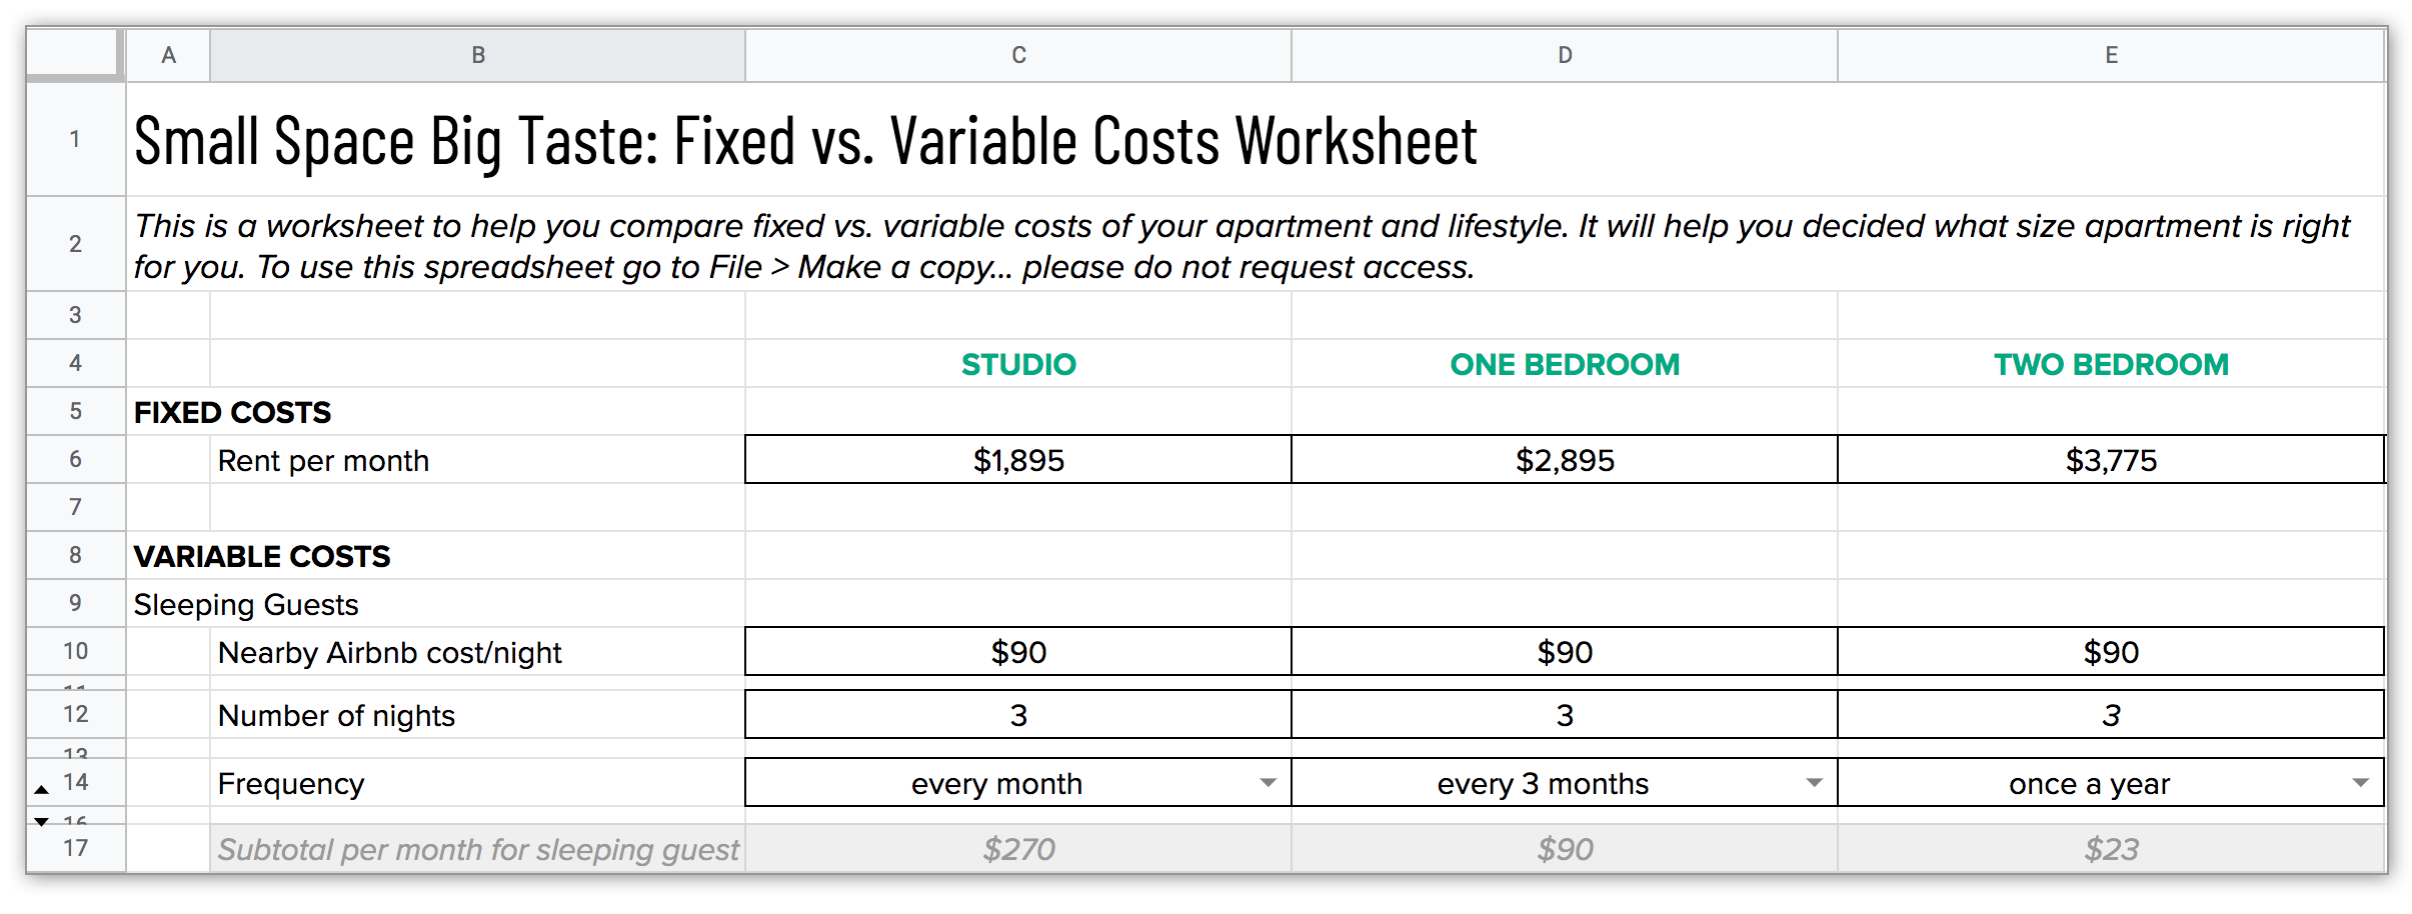 Fixed vs Variable Costs Spreadsheet.png